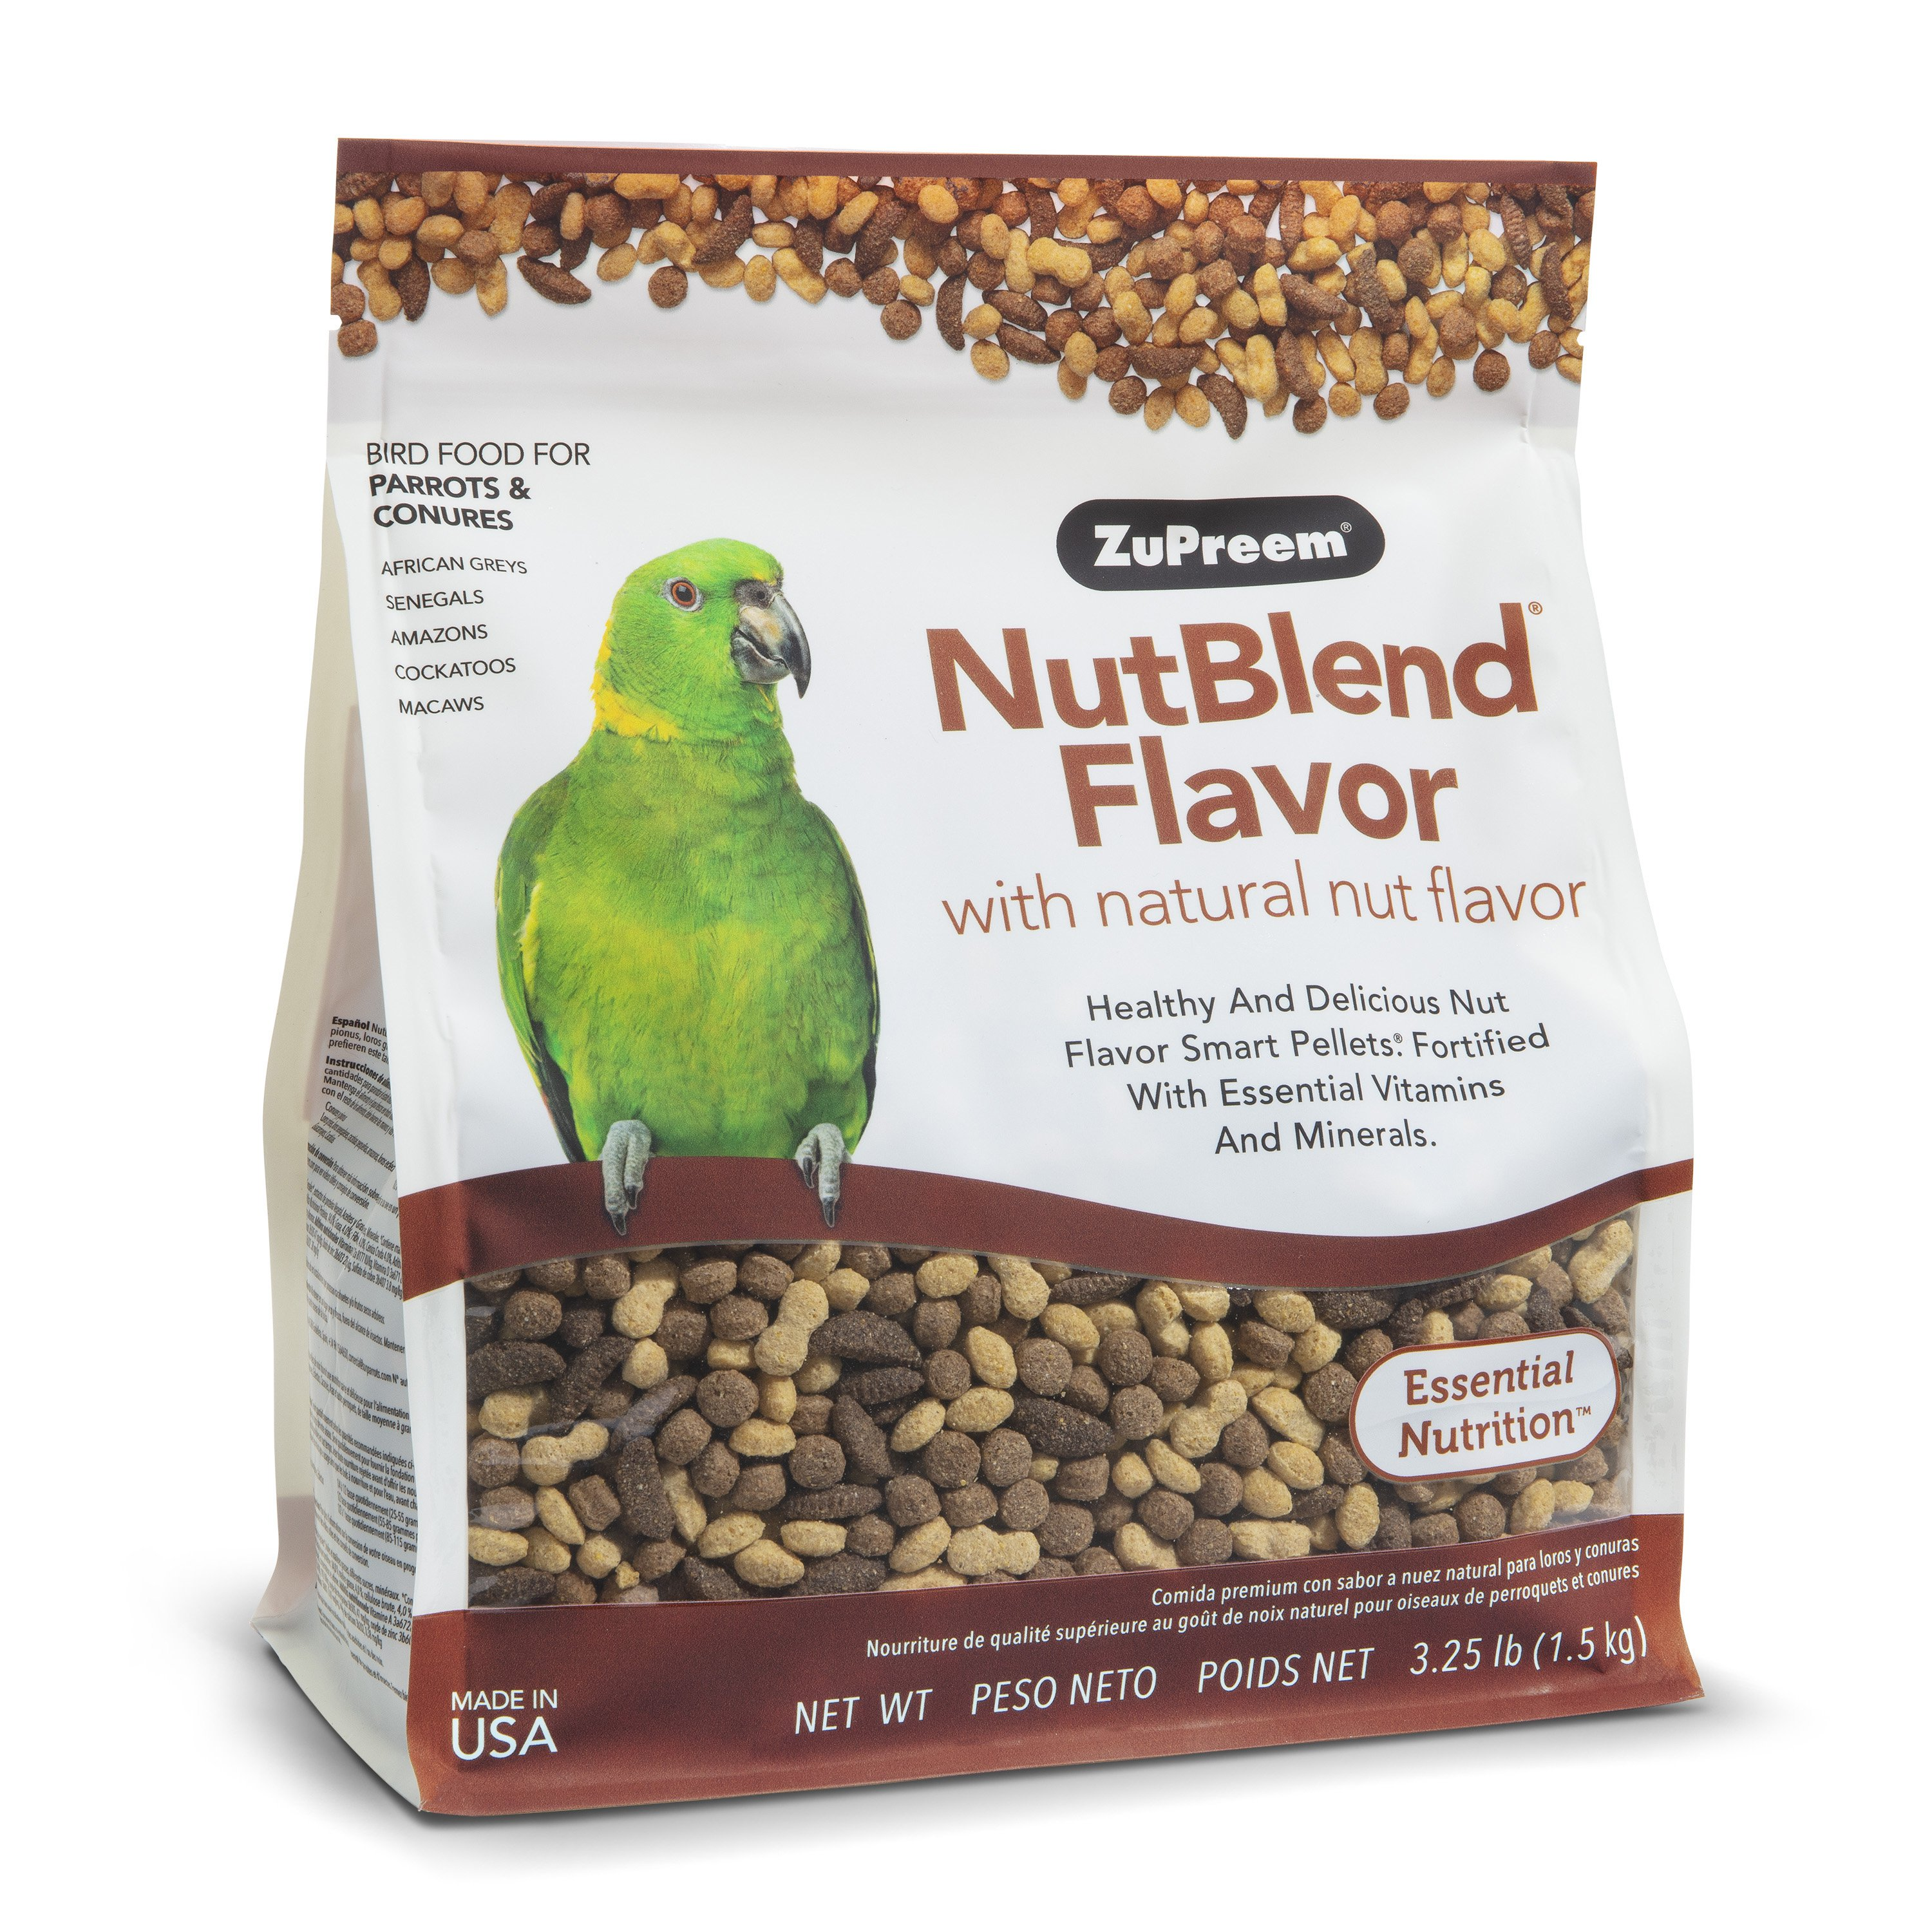 Zupreem NutBlend For Parrots & Conures